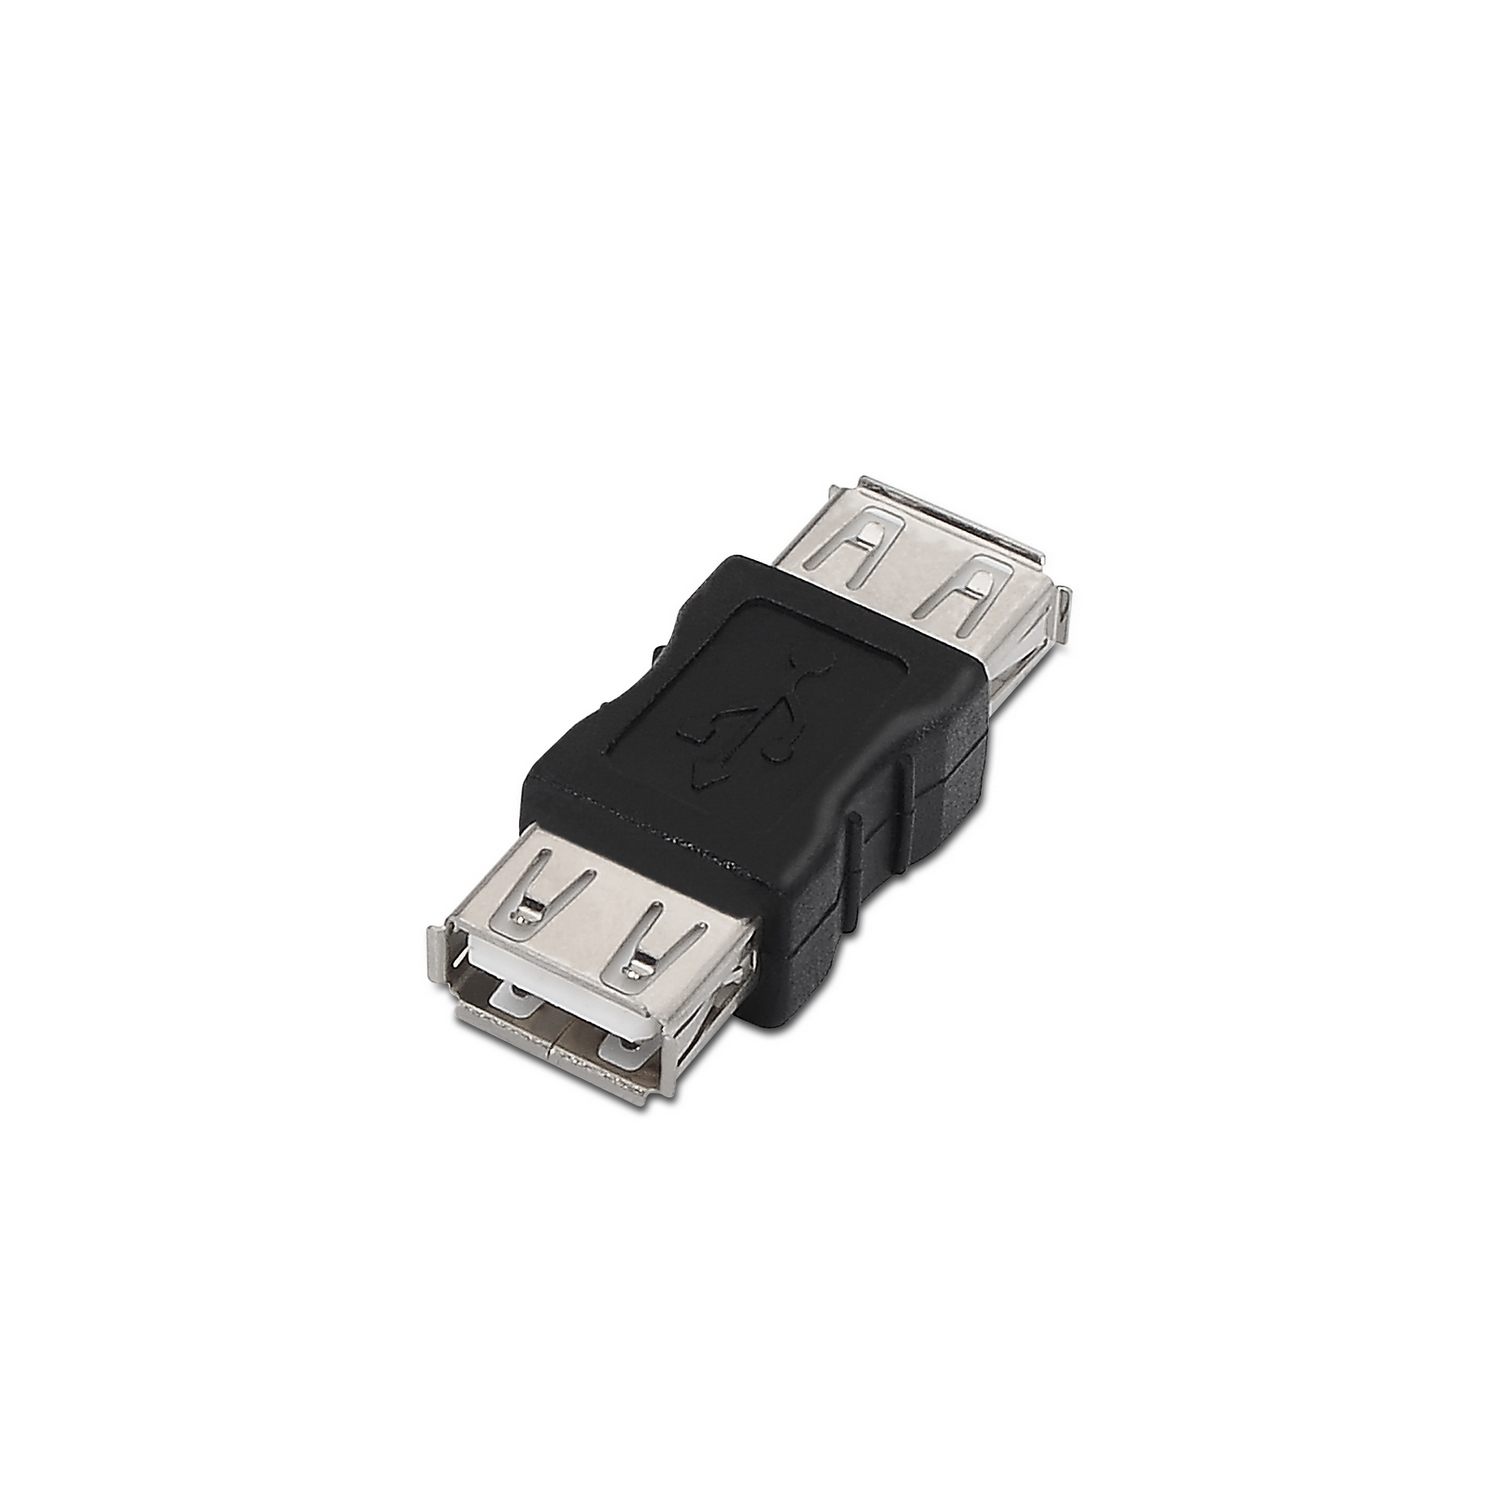 A103-0037 ADAPTADOR DE CABLE USB A NEGRO